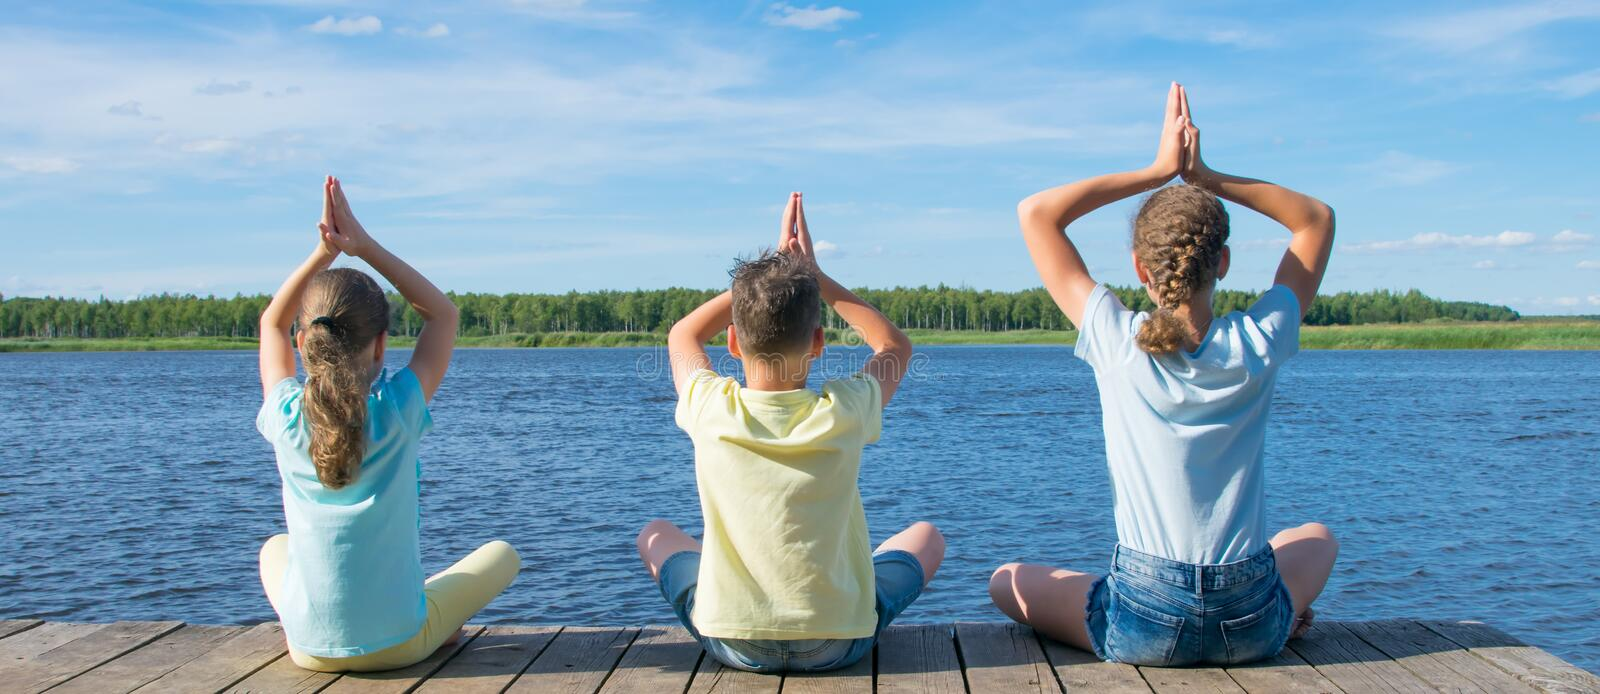 In the open air, on the pier, near the water the company of children is engaged in relaxation in the form of yoga stock photography